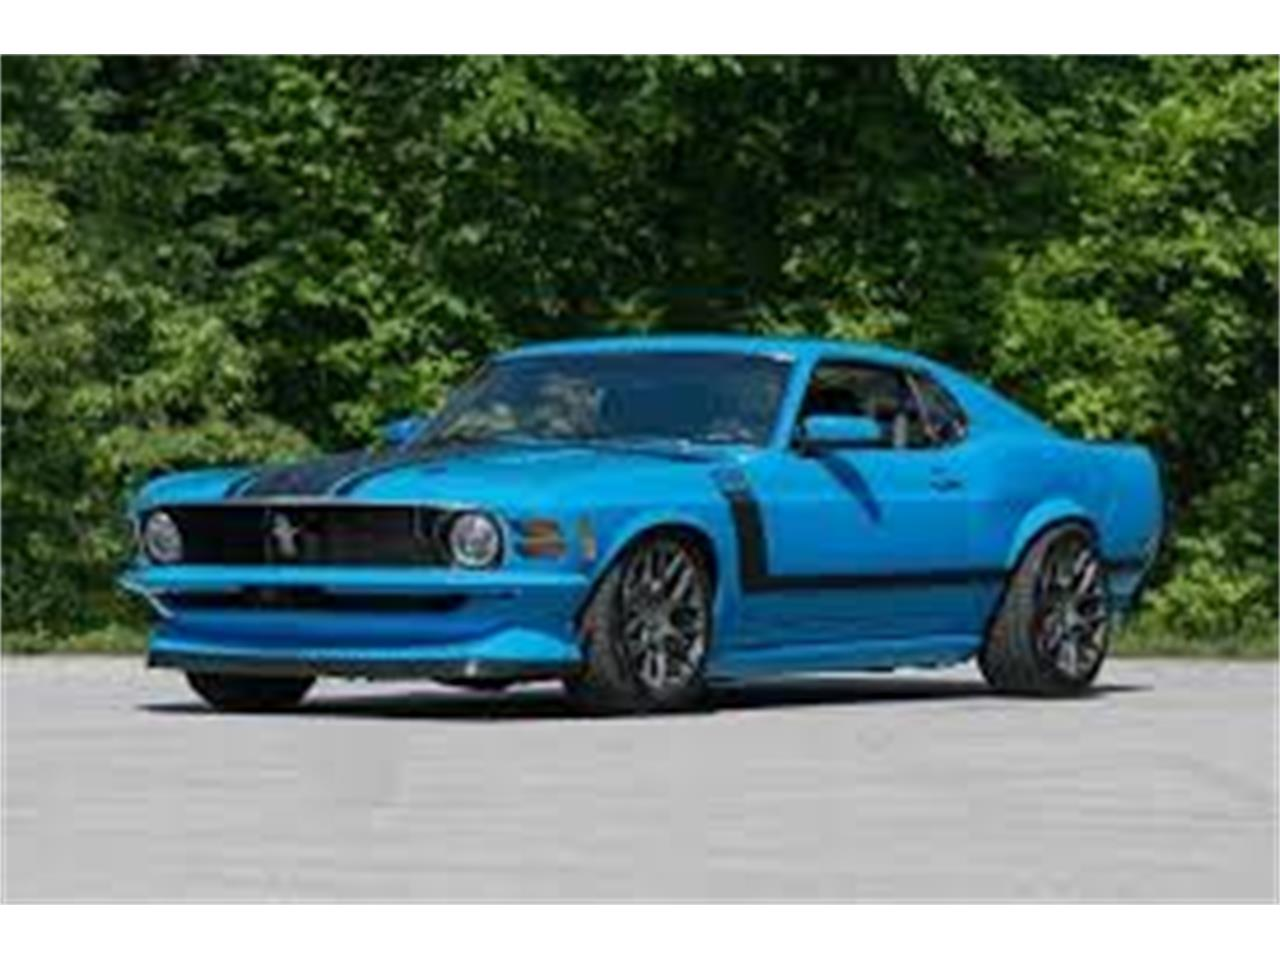 Large Picture of Classic 1970 Ford Mustang located in WVC Utah - $99,999.00 - PDE8